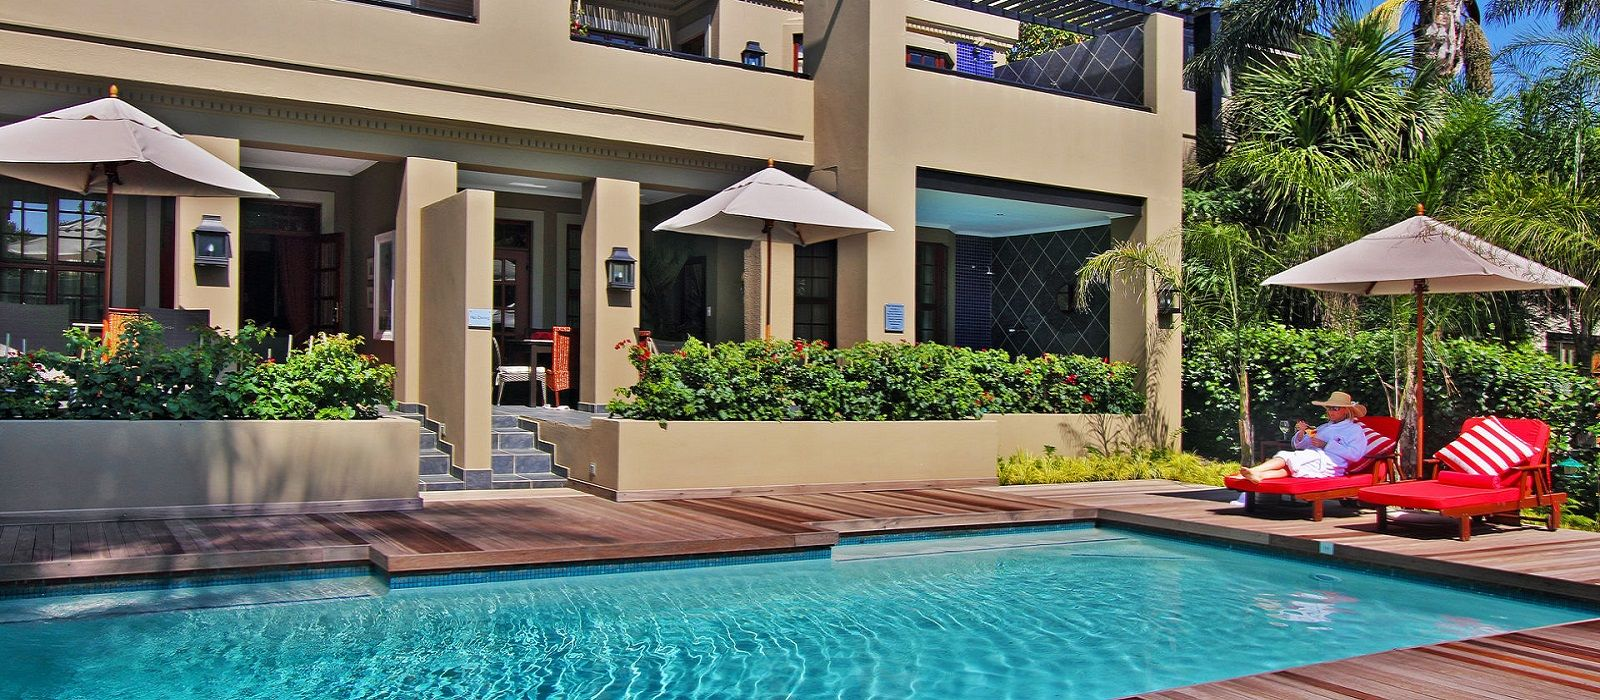 Hotel The Residence Boutique  South Africa